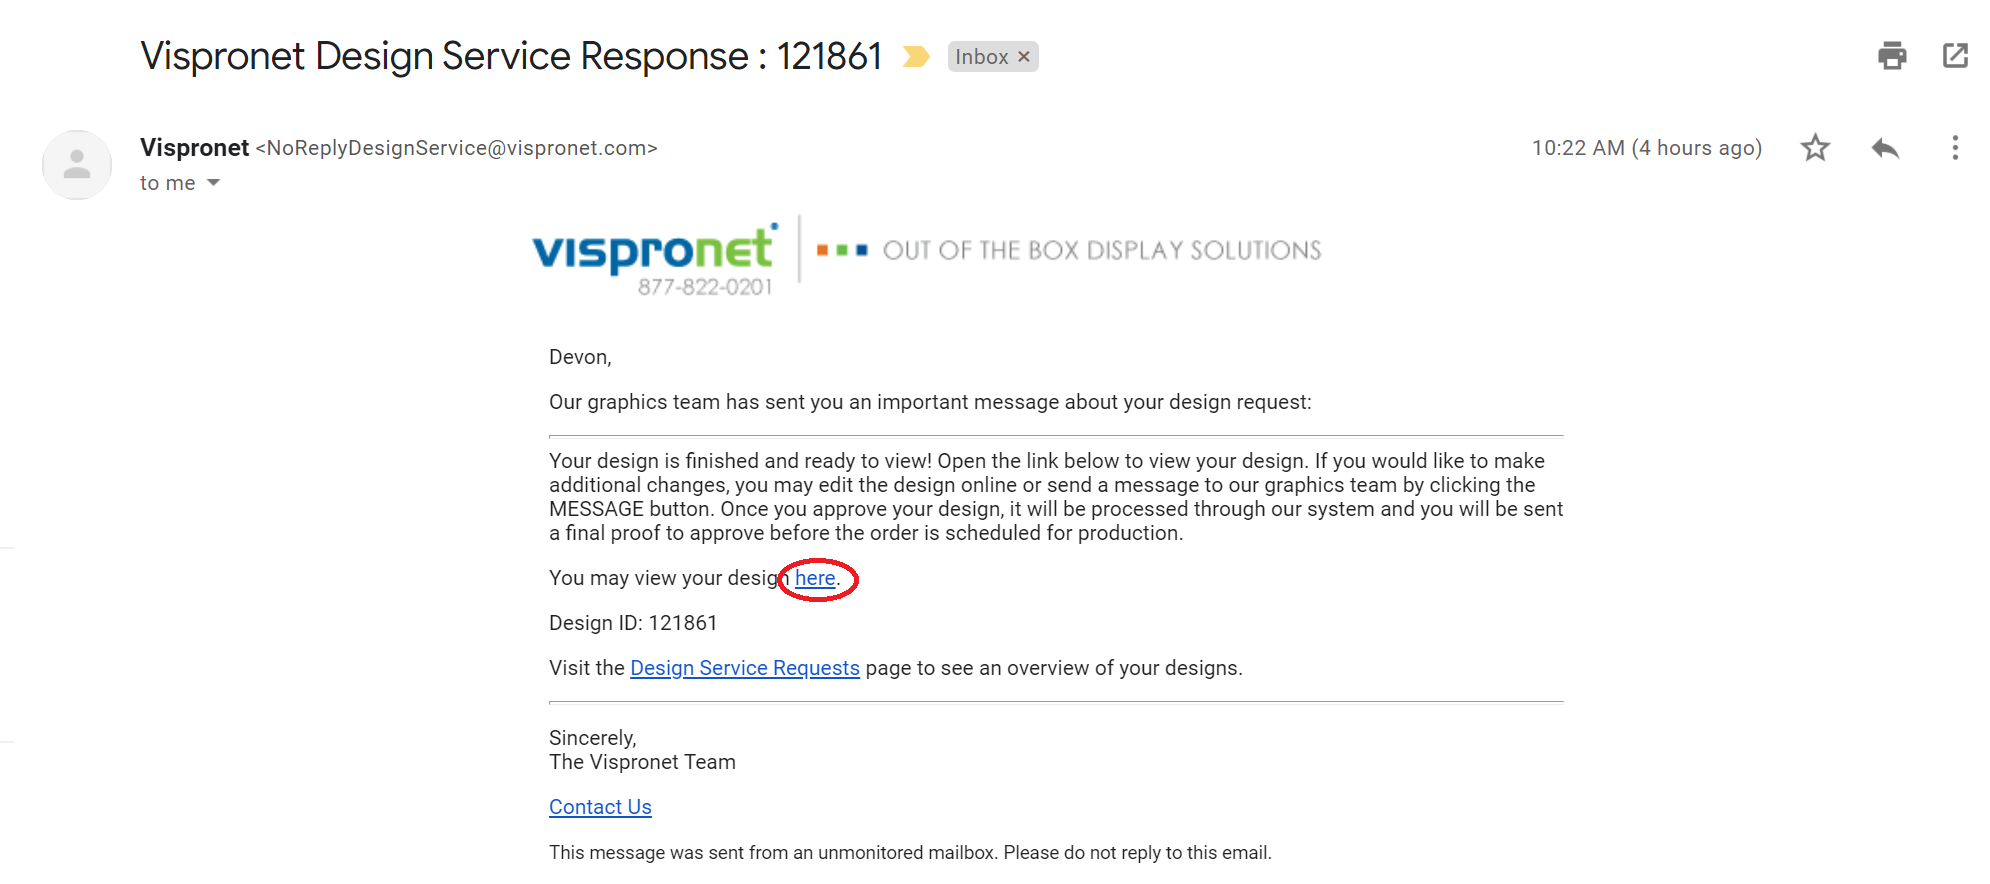 Step 1: Receive Email with Link to Finished Design